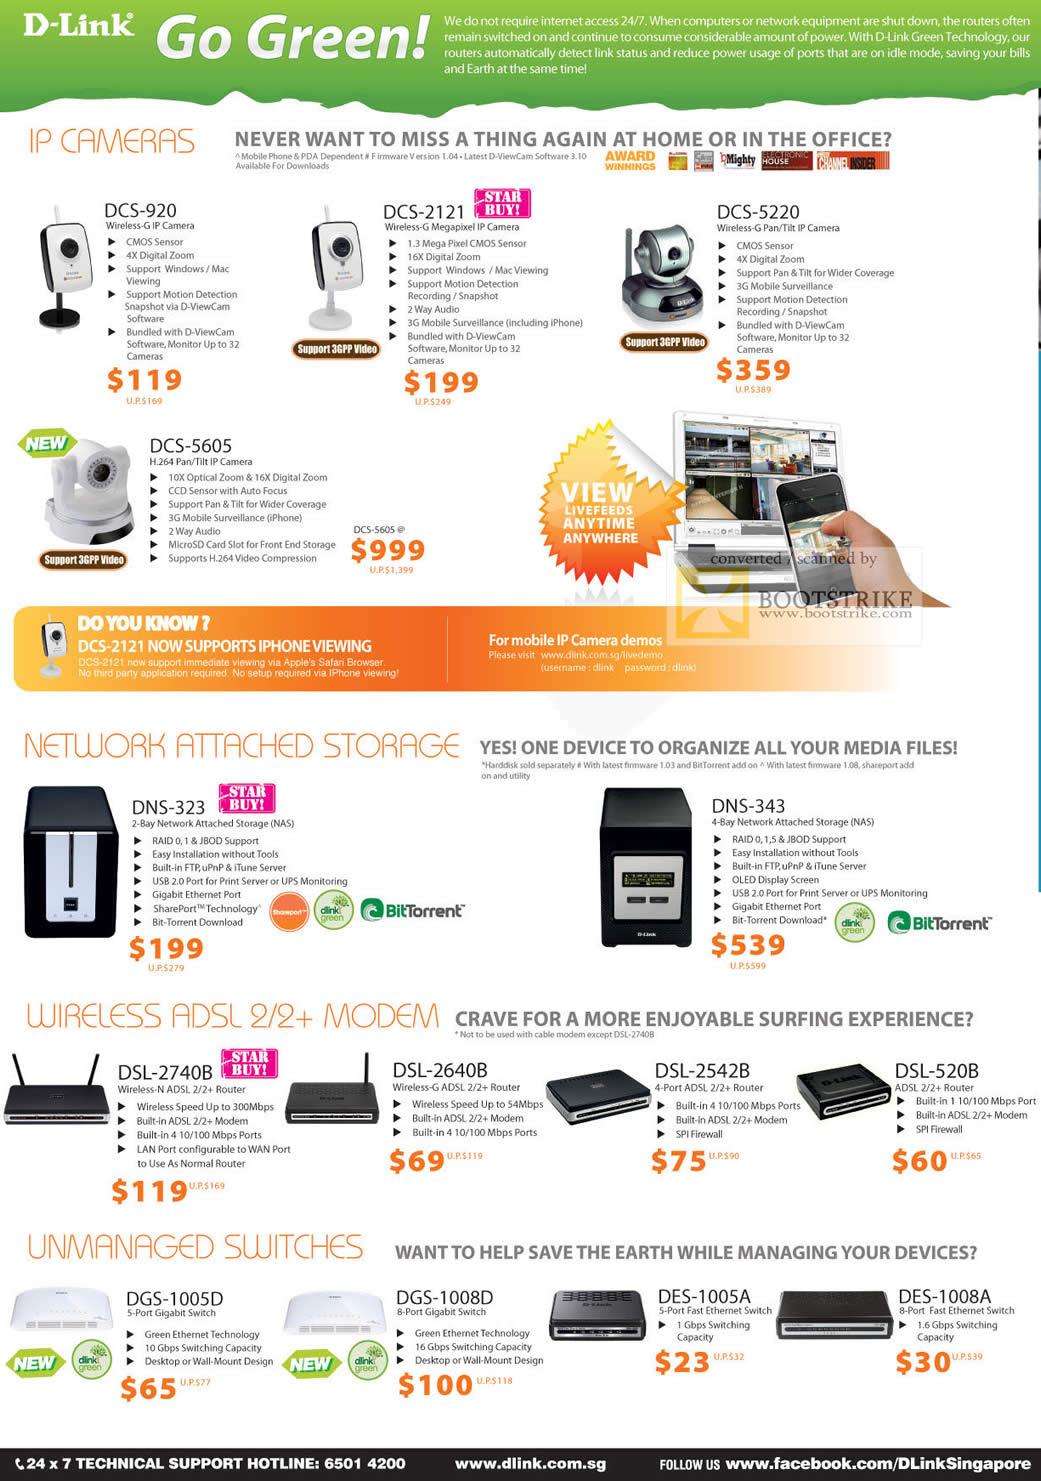 Comex 2010 price list image brochure of D Link IPCam DCS 920 2121 5220 5605 NAS DNS 323 343 Wireless ADSL Modem DSL 2740B 2640B 2542B 520B Switches